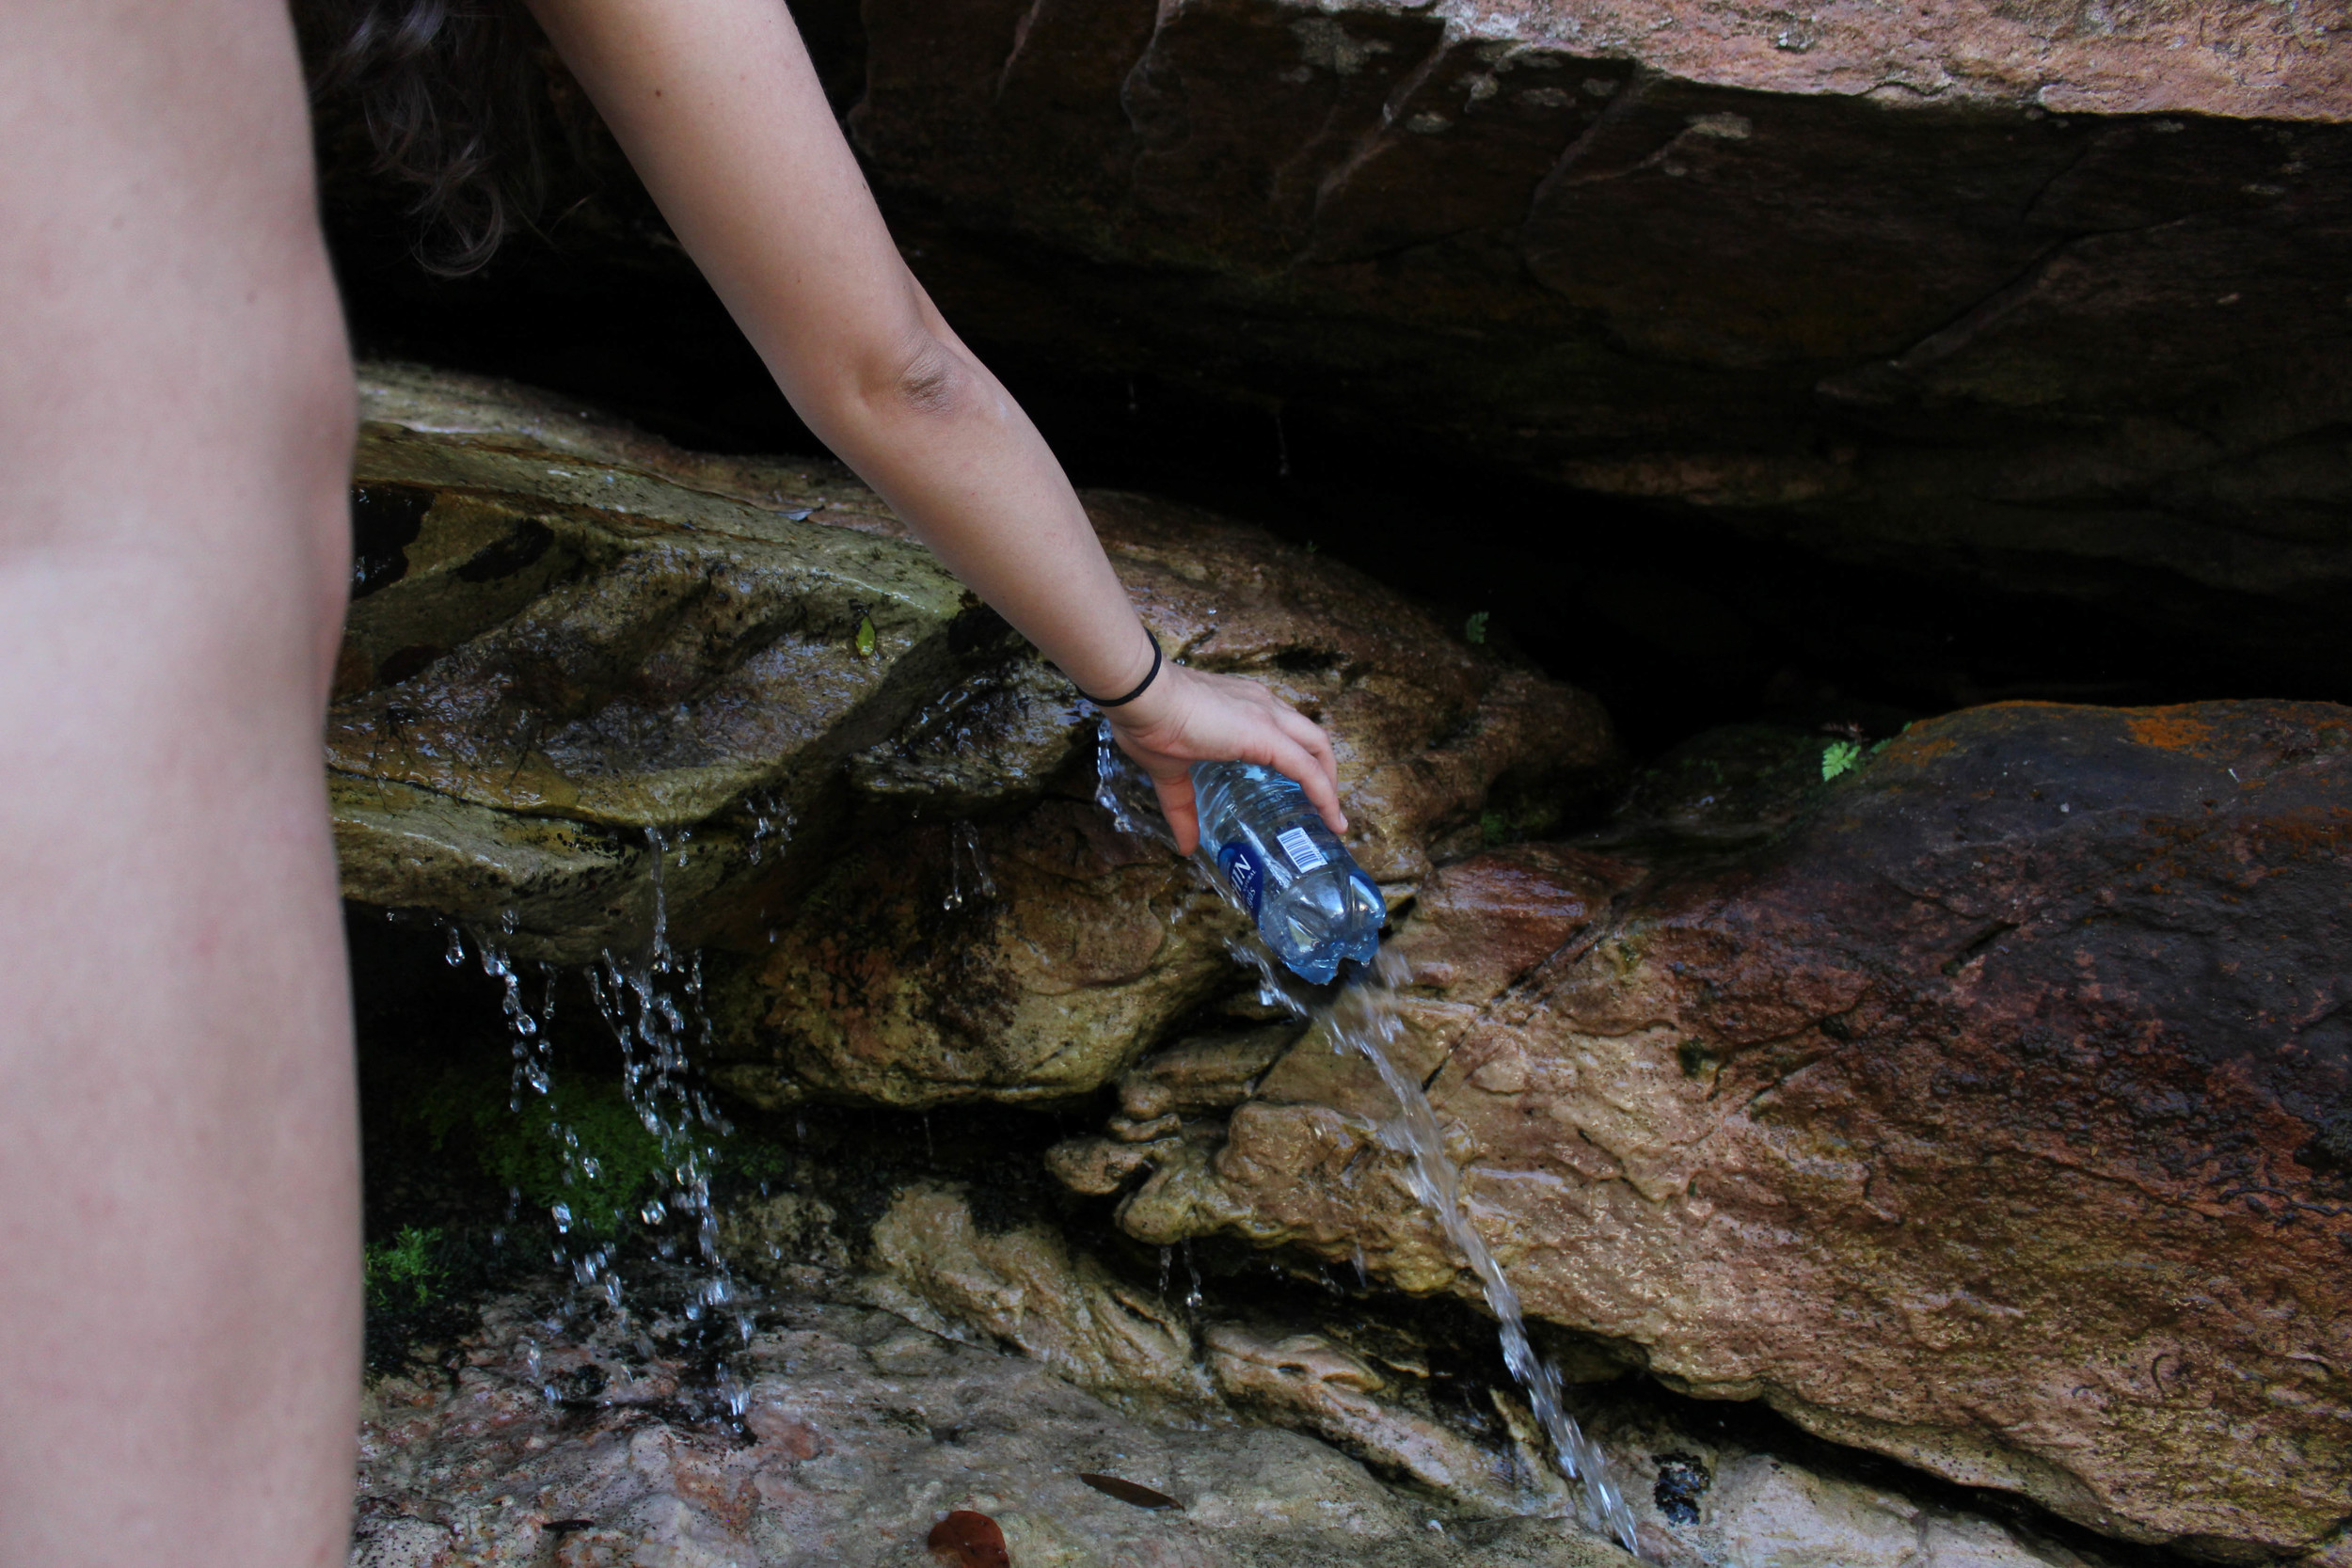 Filling our bottles with natural spring water. So refreshing and clean!